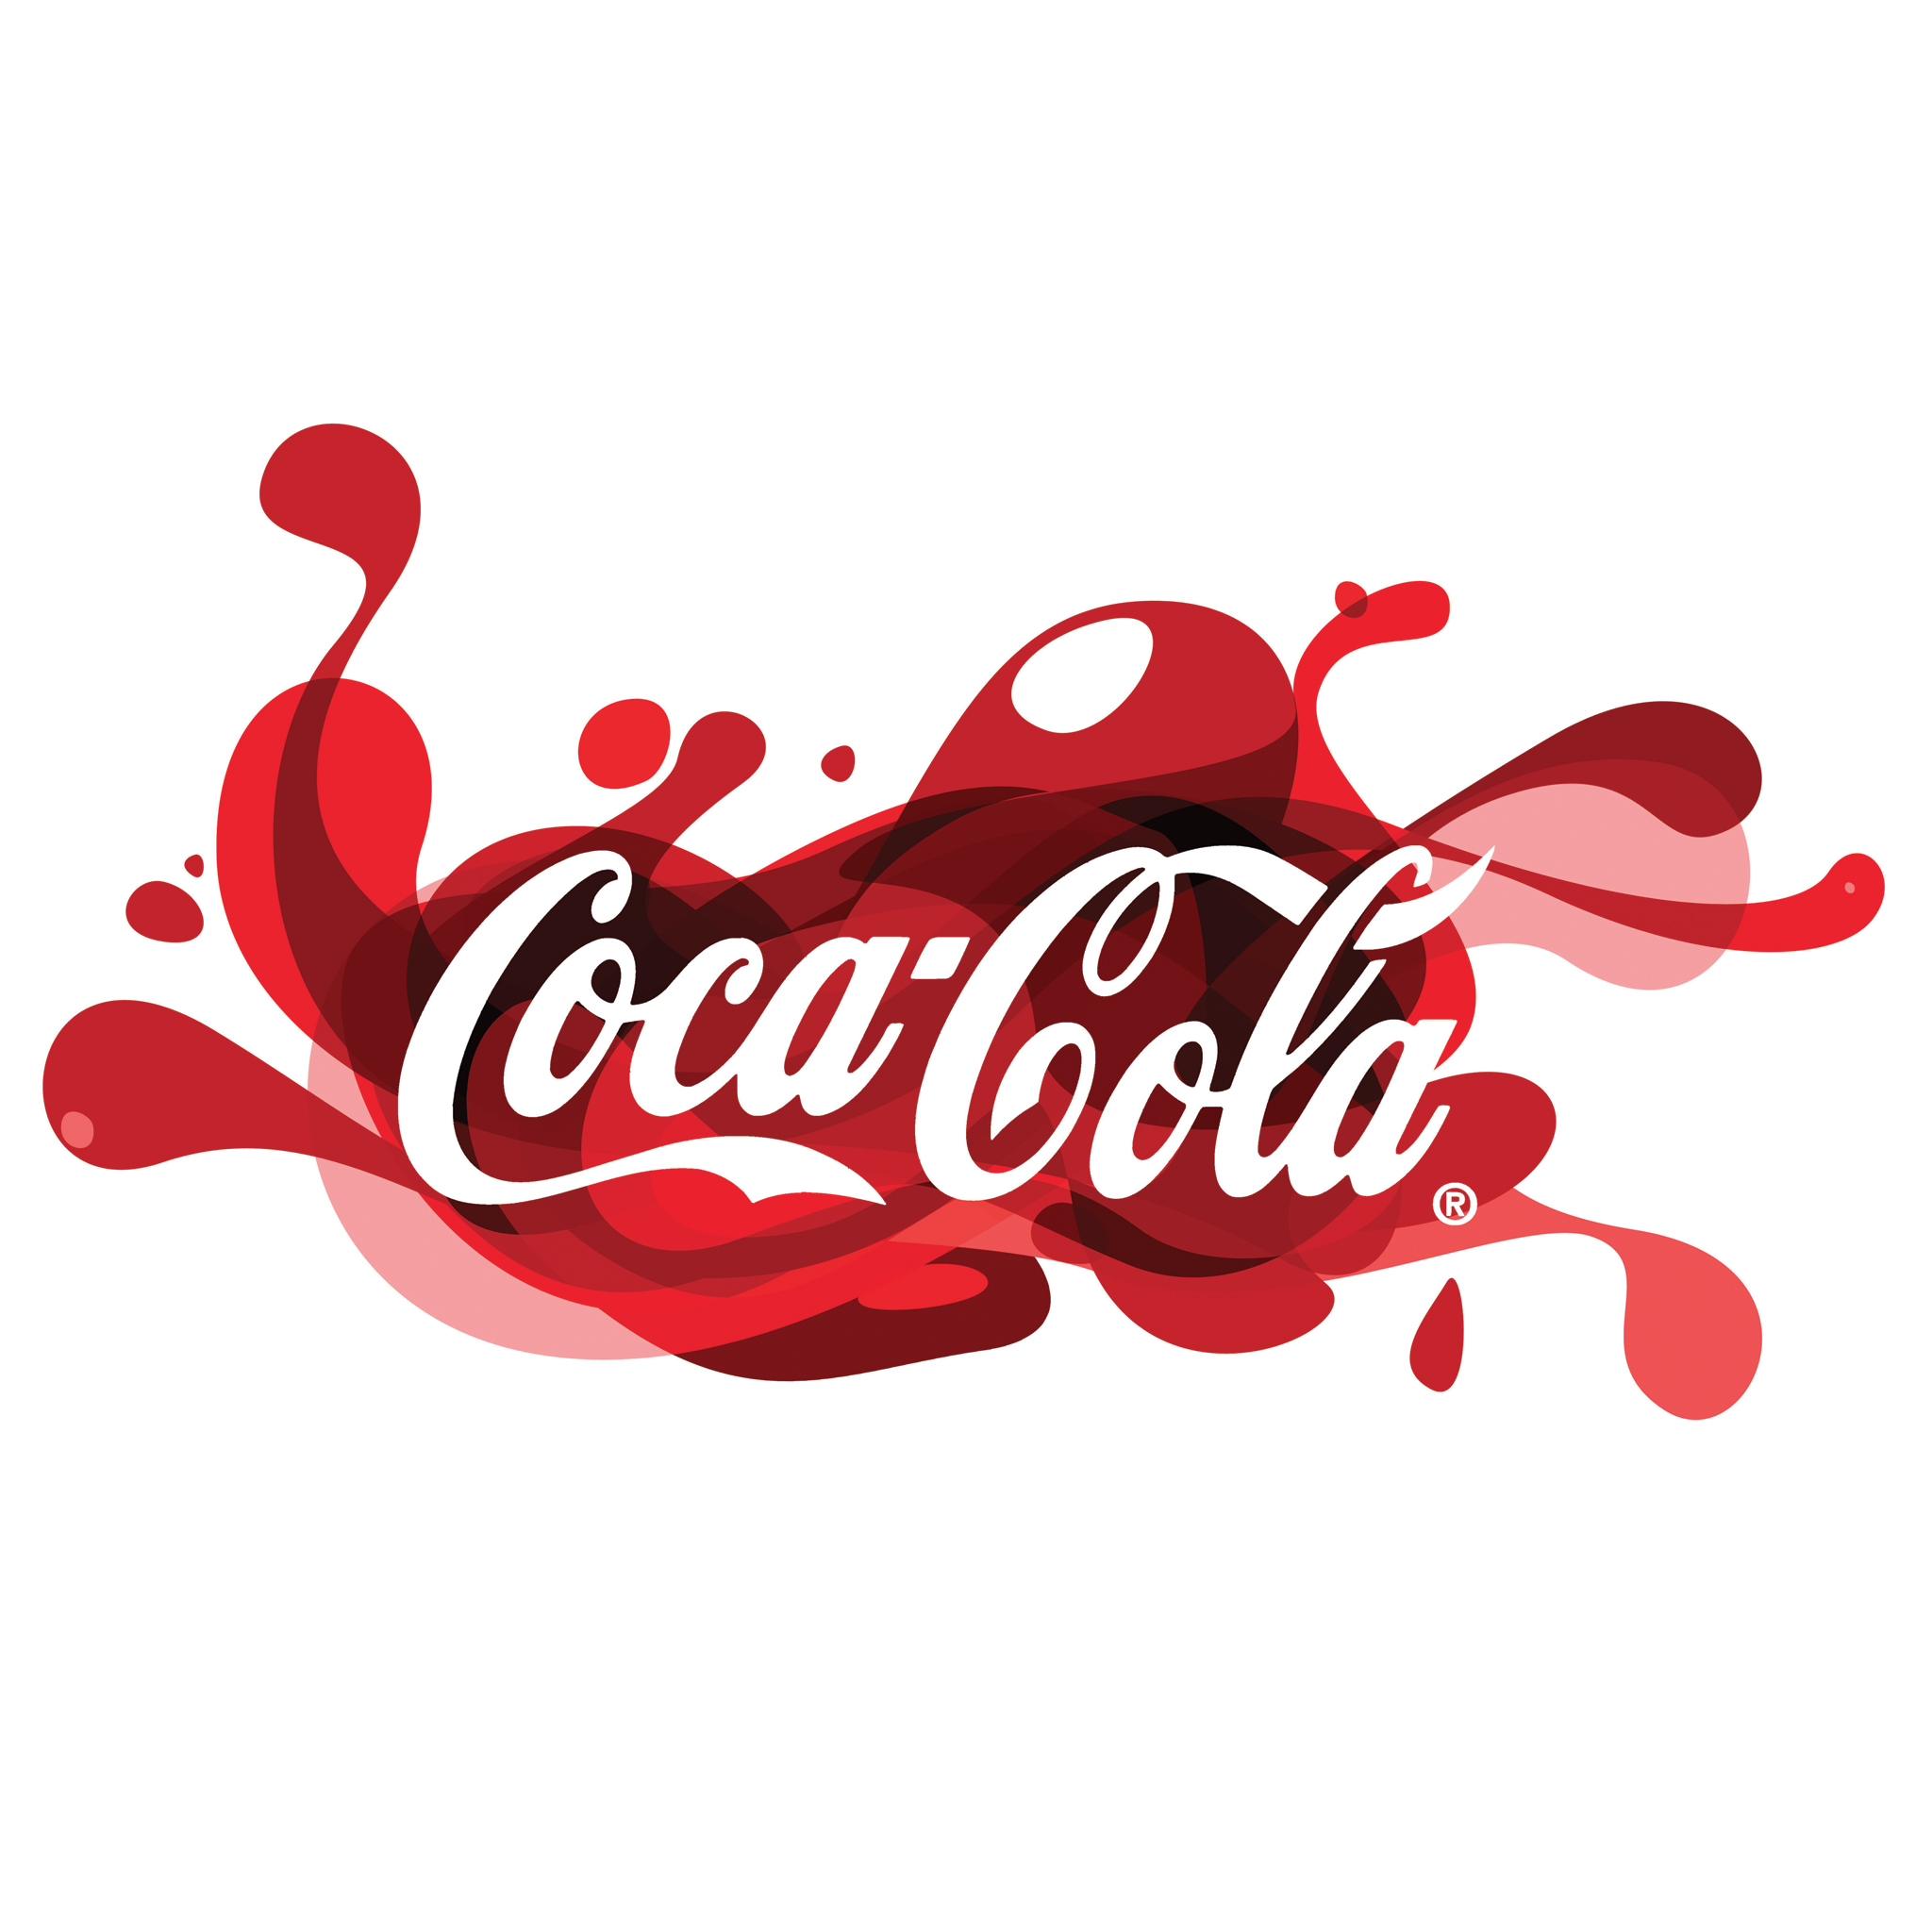 Coca Cola Splash 3Wallpapers iPad Retina Coca Cola Splash   iPad Retina